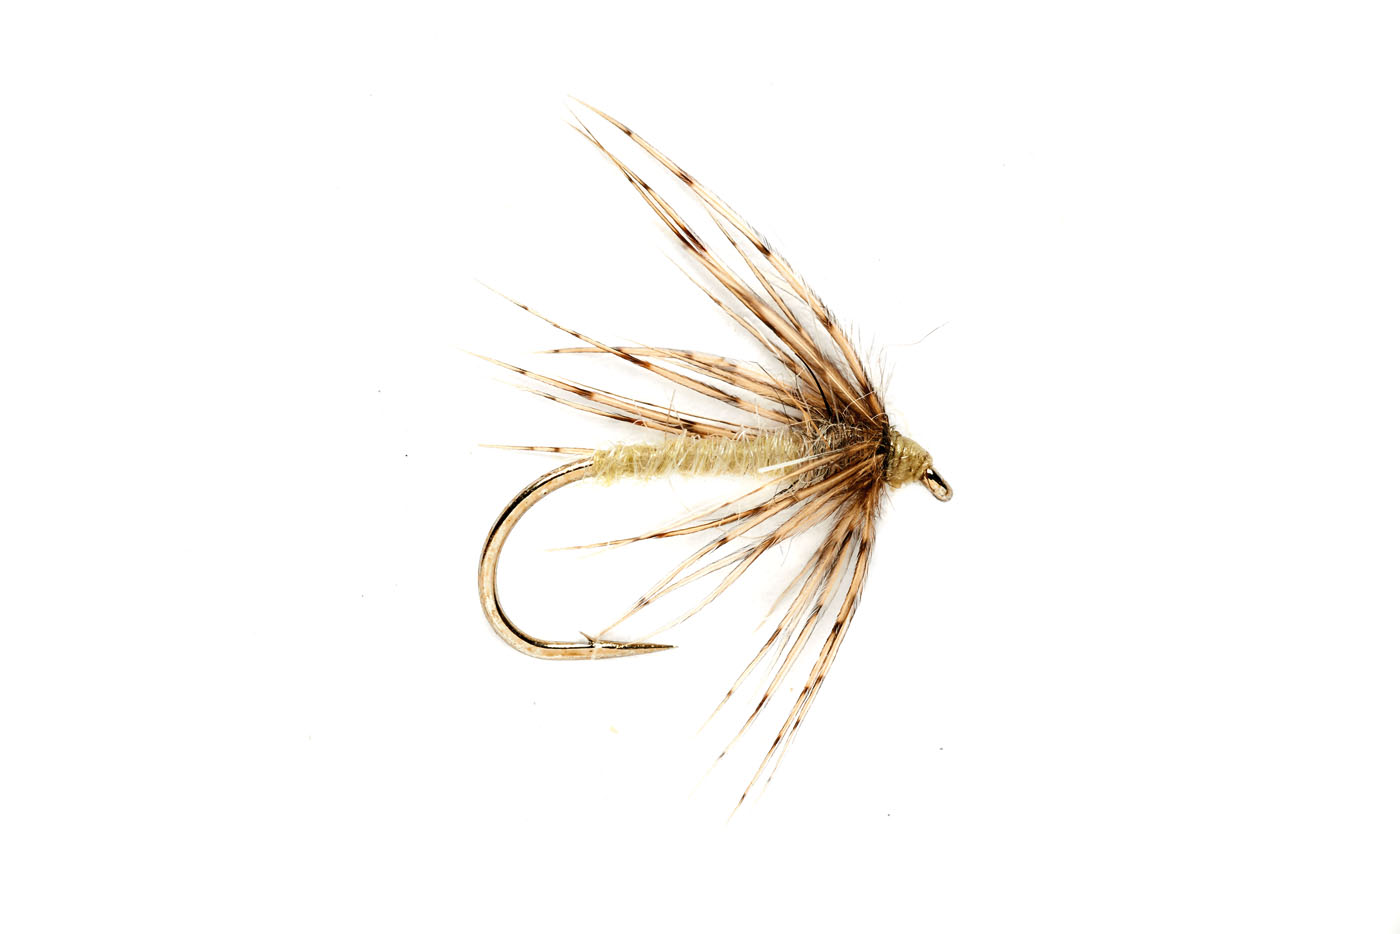 Wet flies soft hackle spider caddis pale yellow for Wet fly fishing